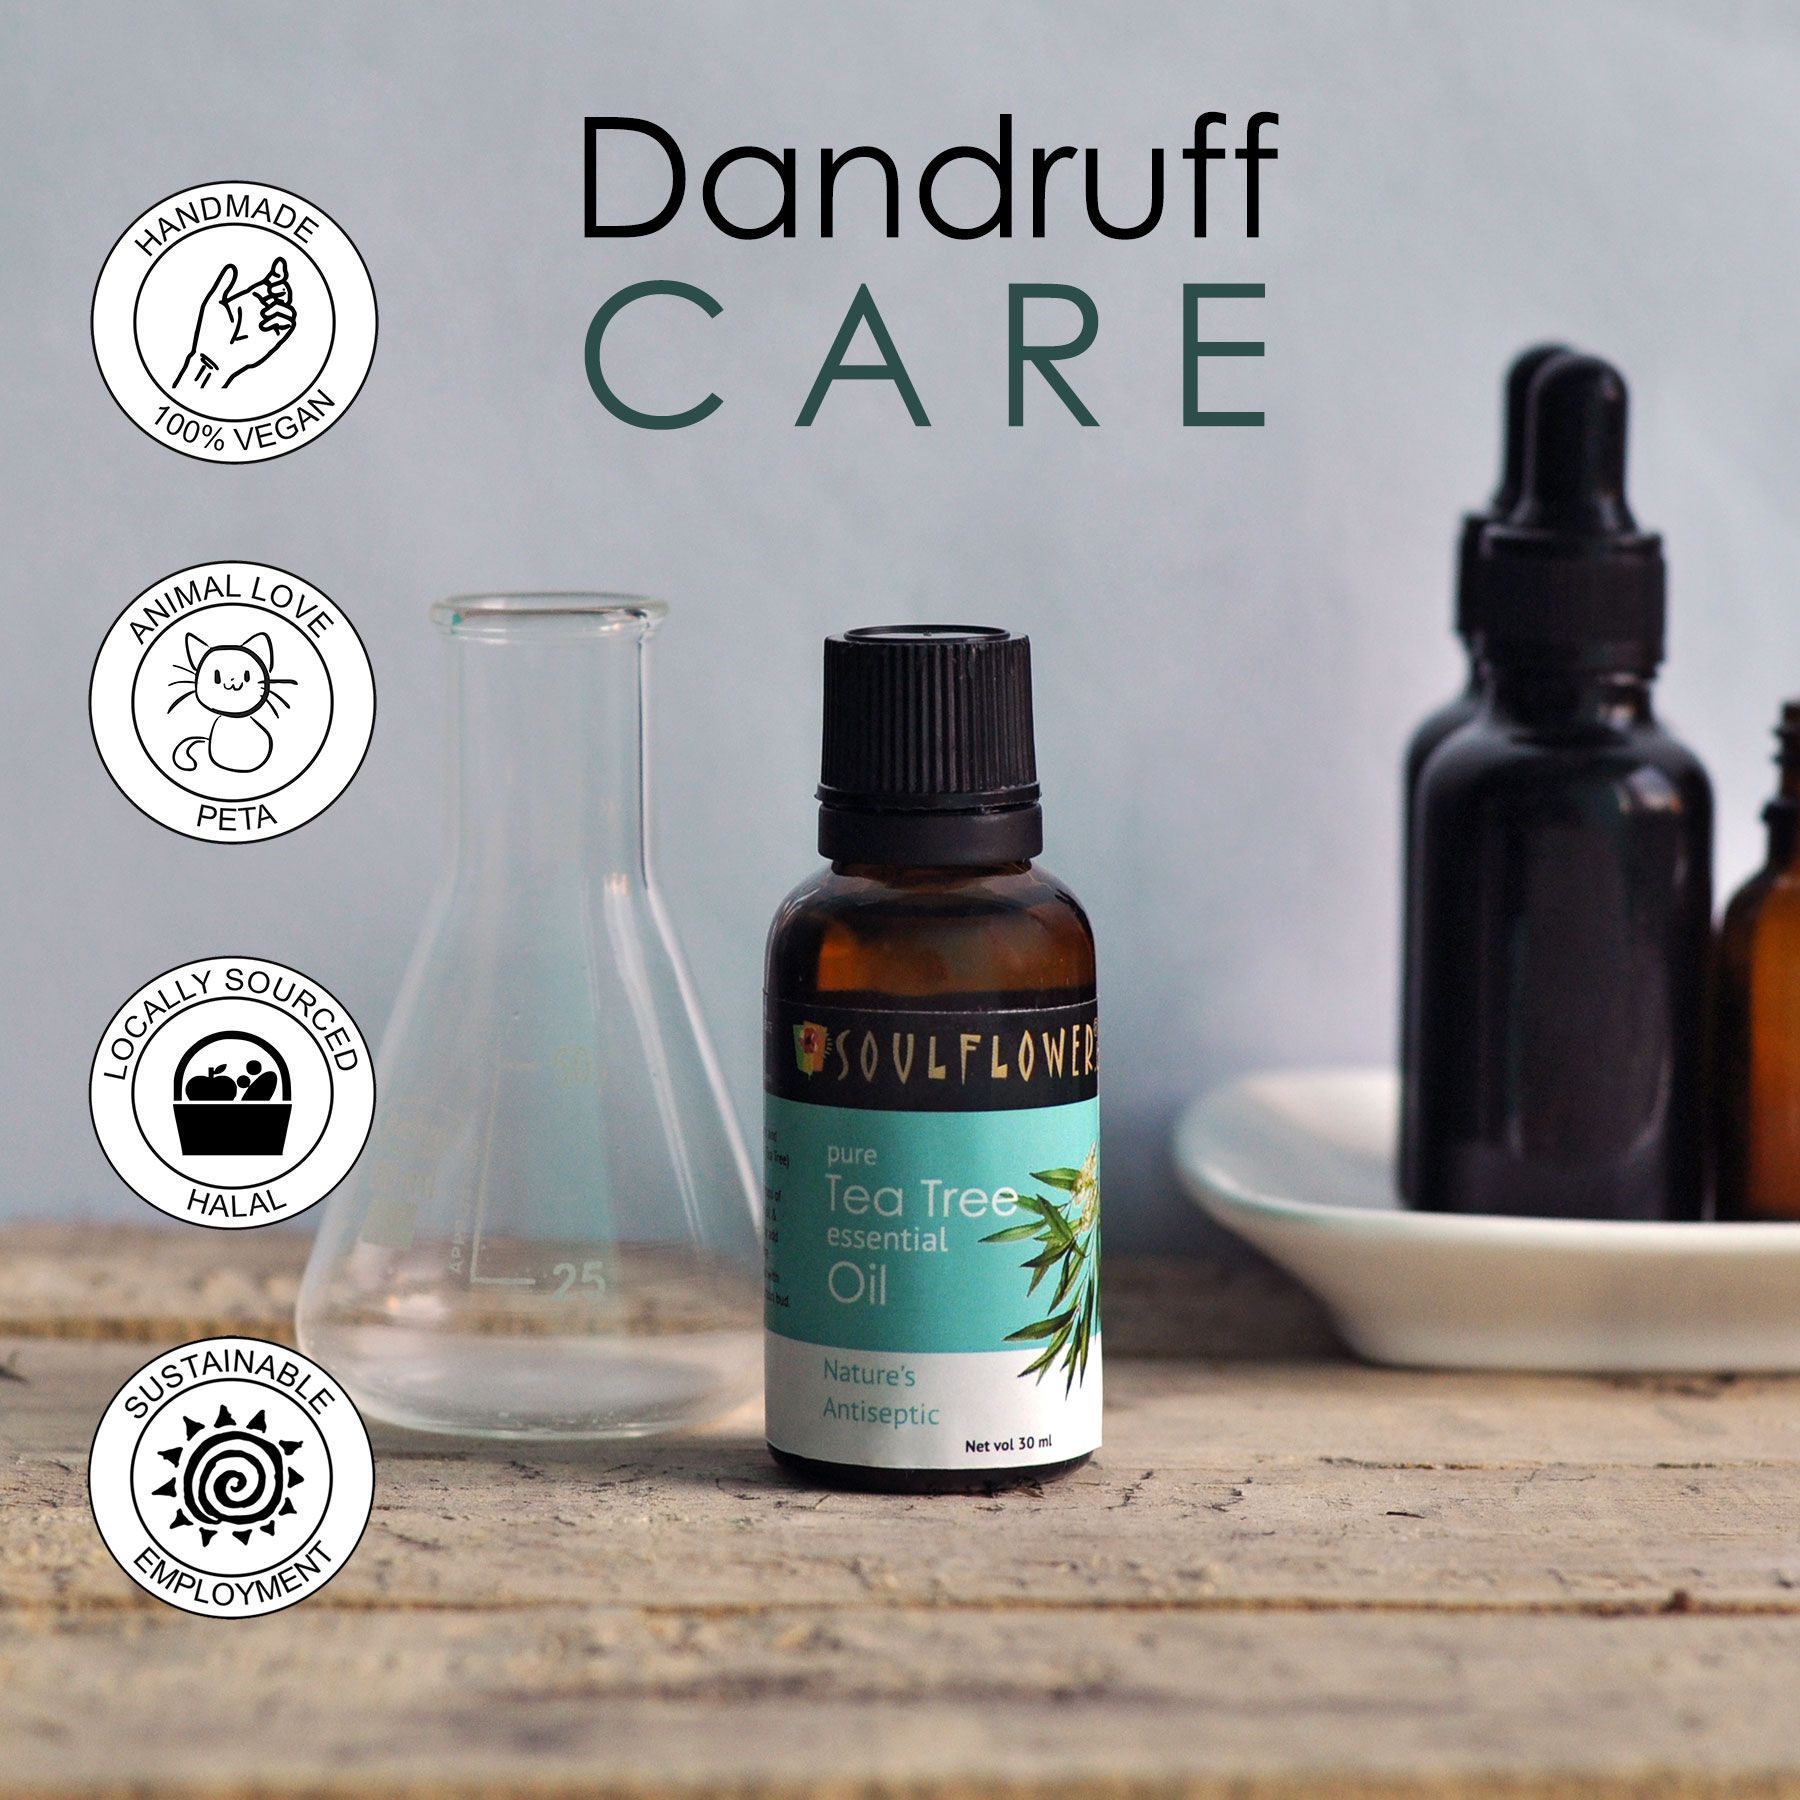 Tea Tree, the best and effective solution for dandruff. 2 drops with any carrier oil to permanently heal scalp issues.